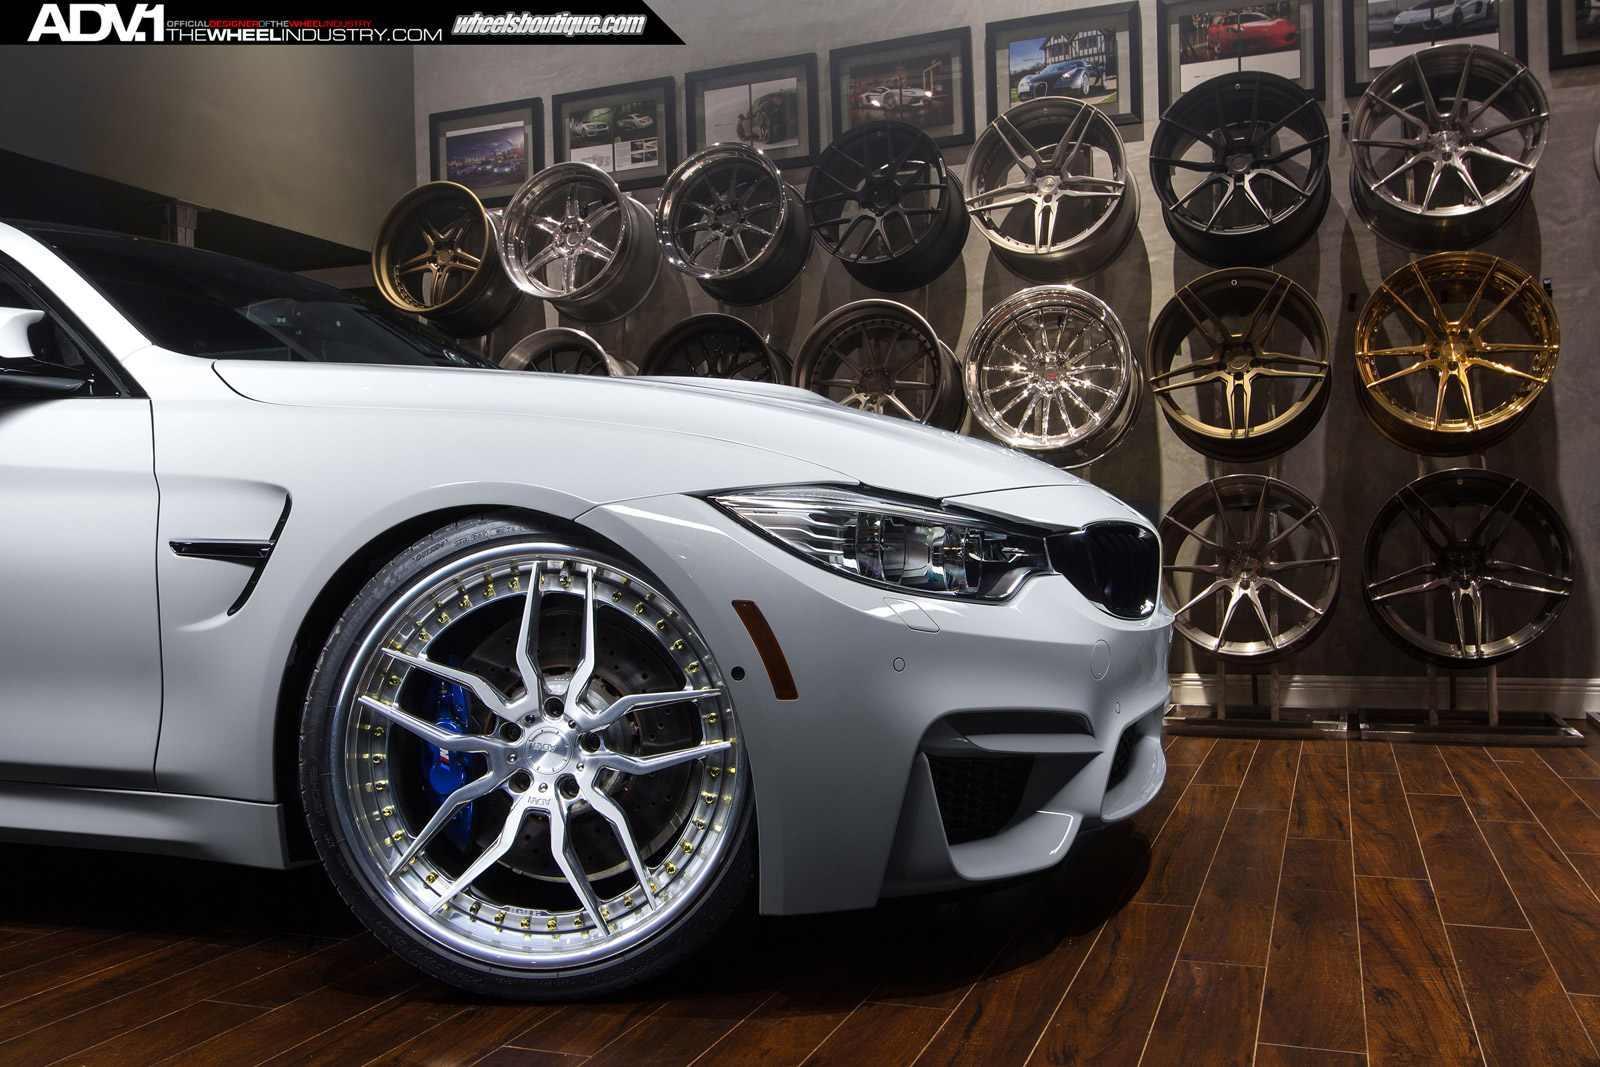 The Perfect Match: BMW M4 and ADV.1 Wheels - autoevolution